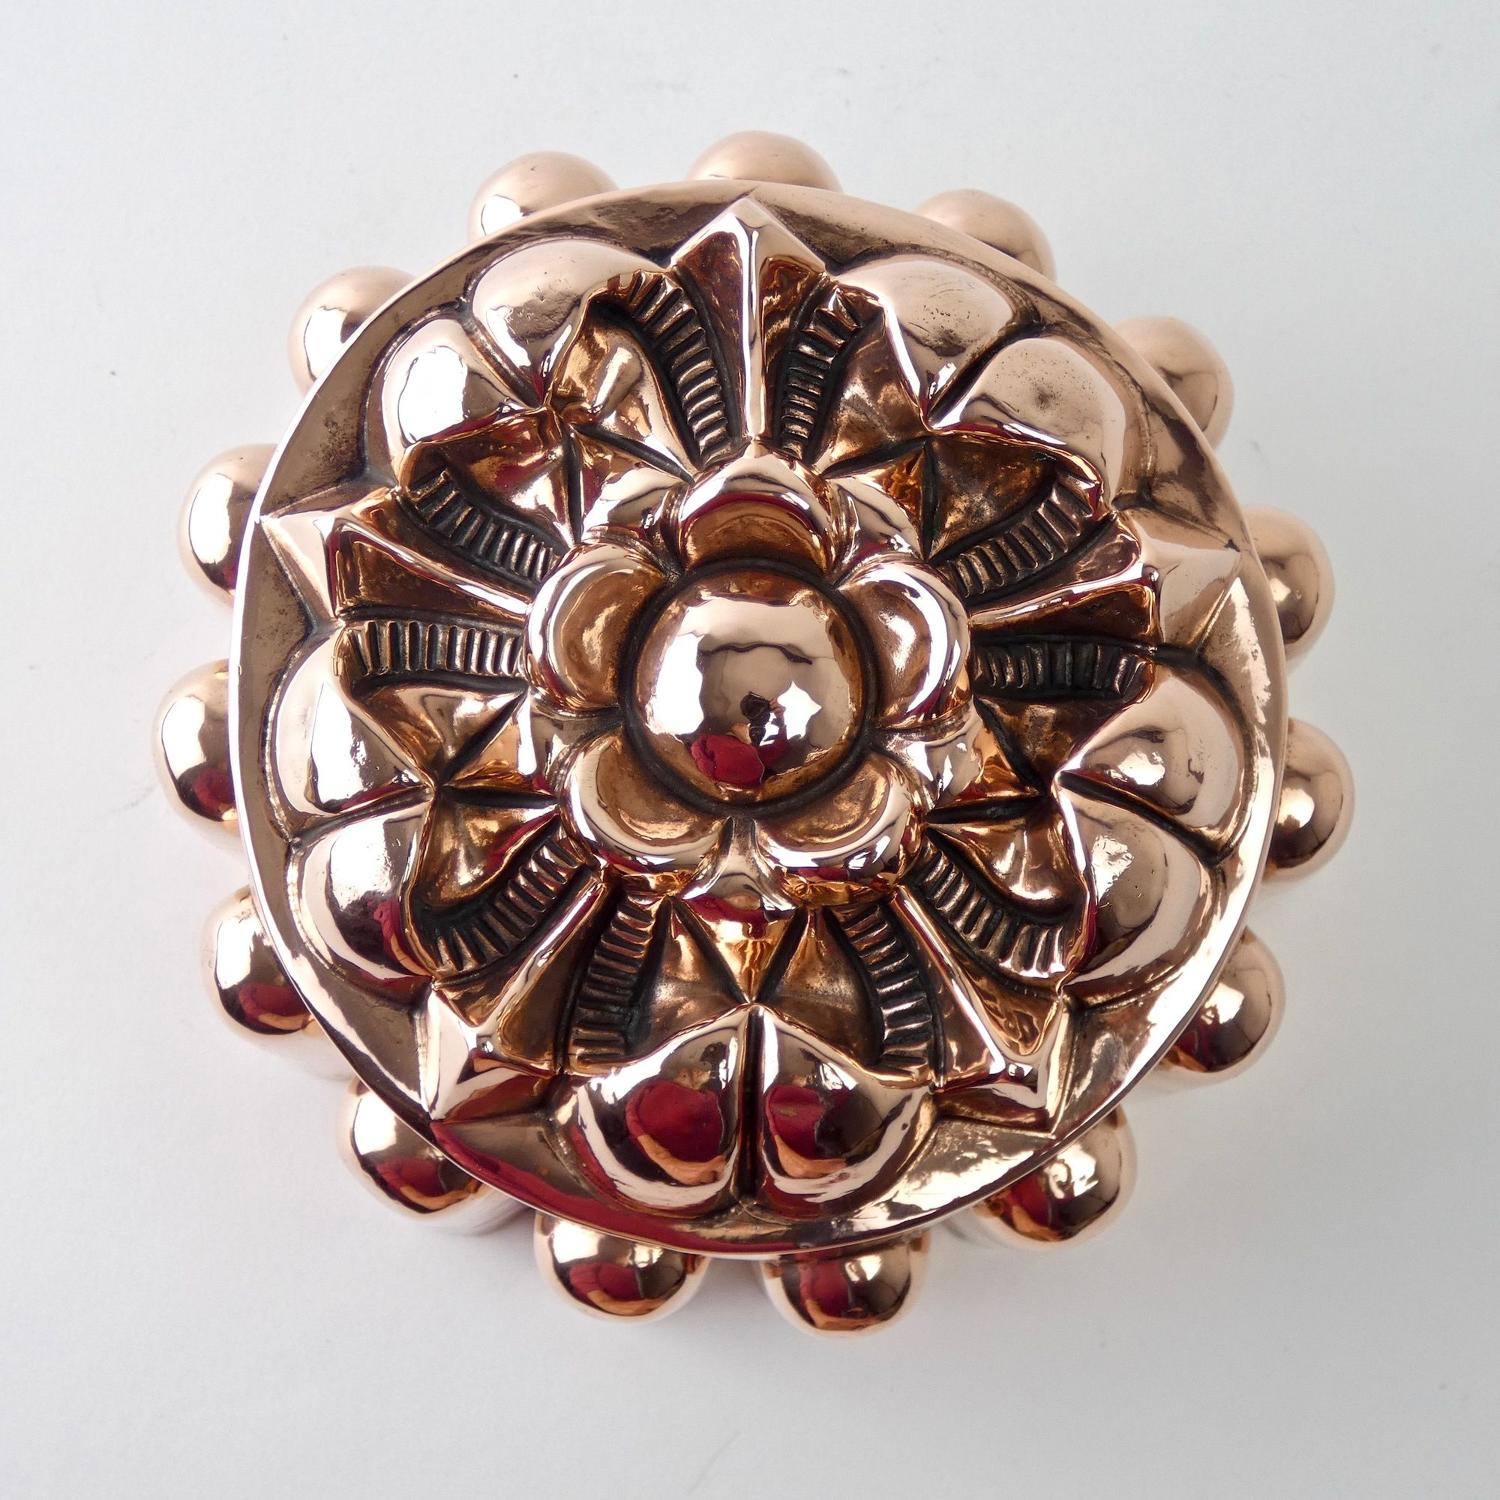 Copper mould with intricate flower top